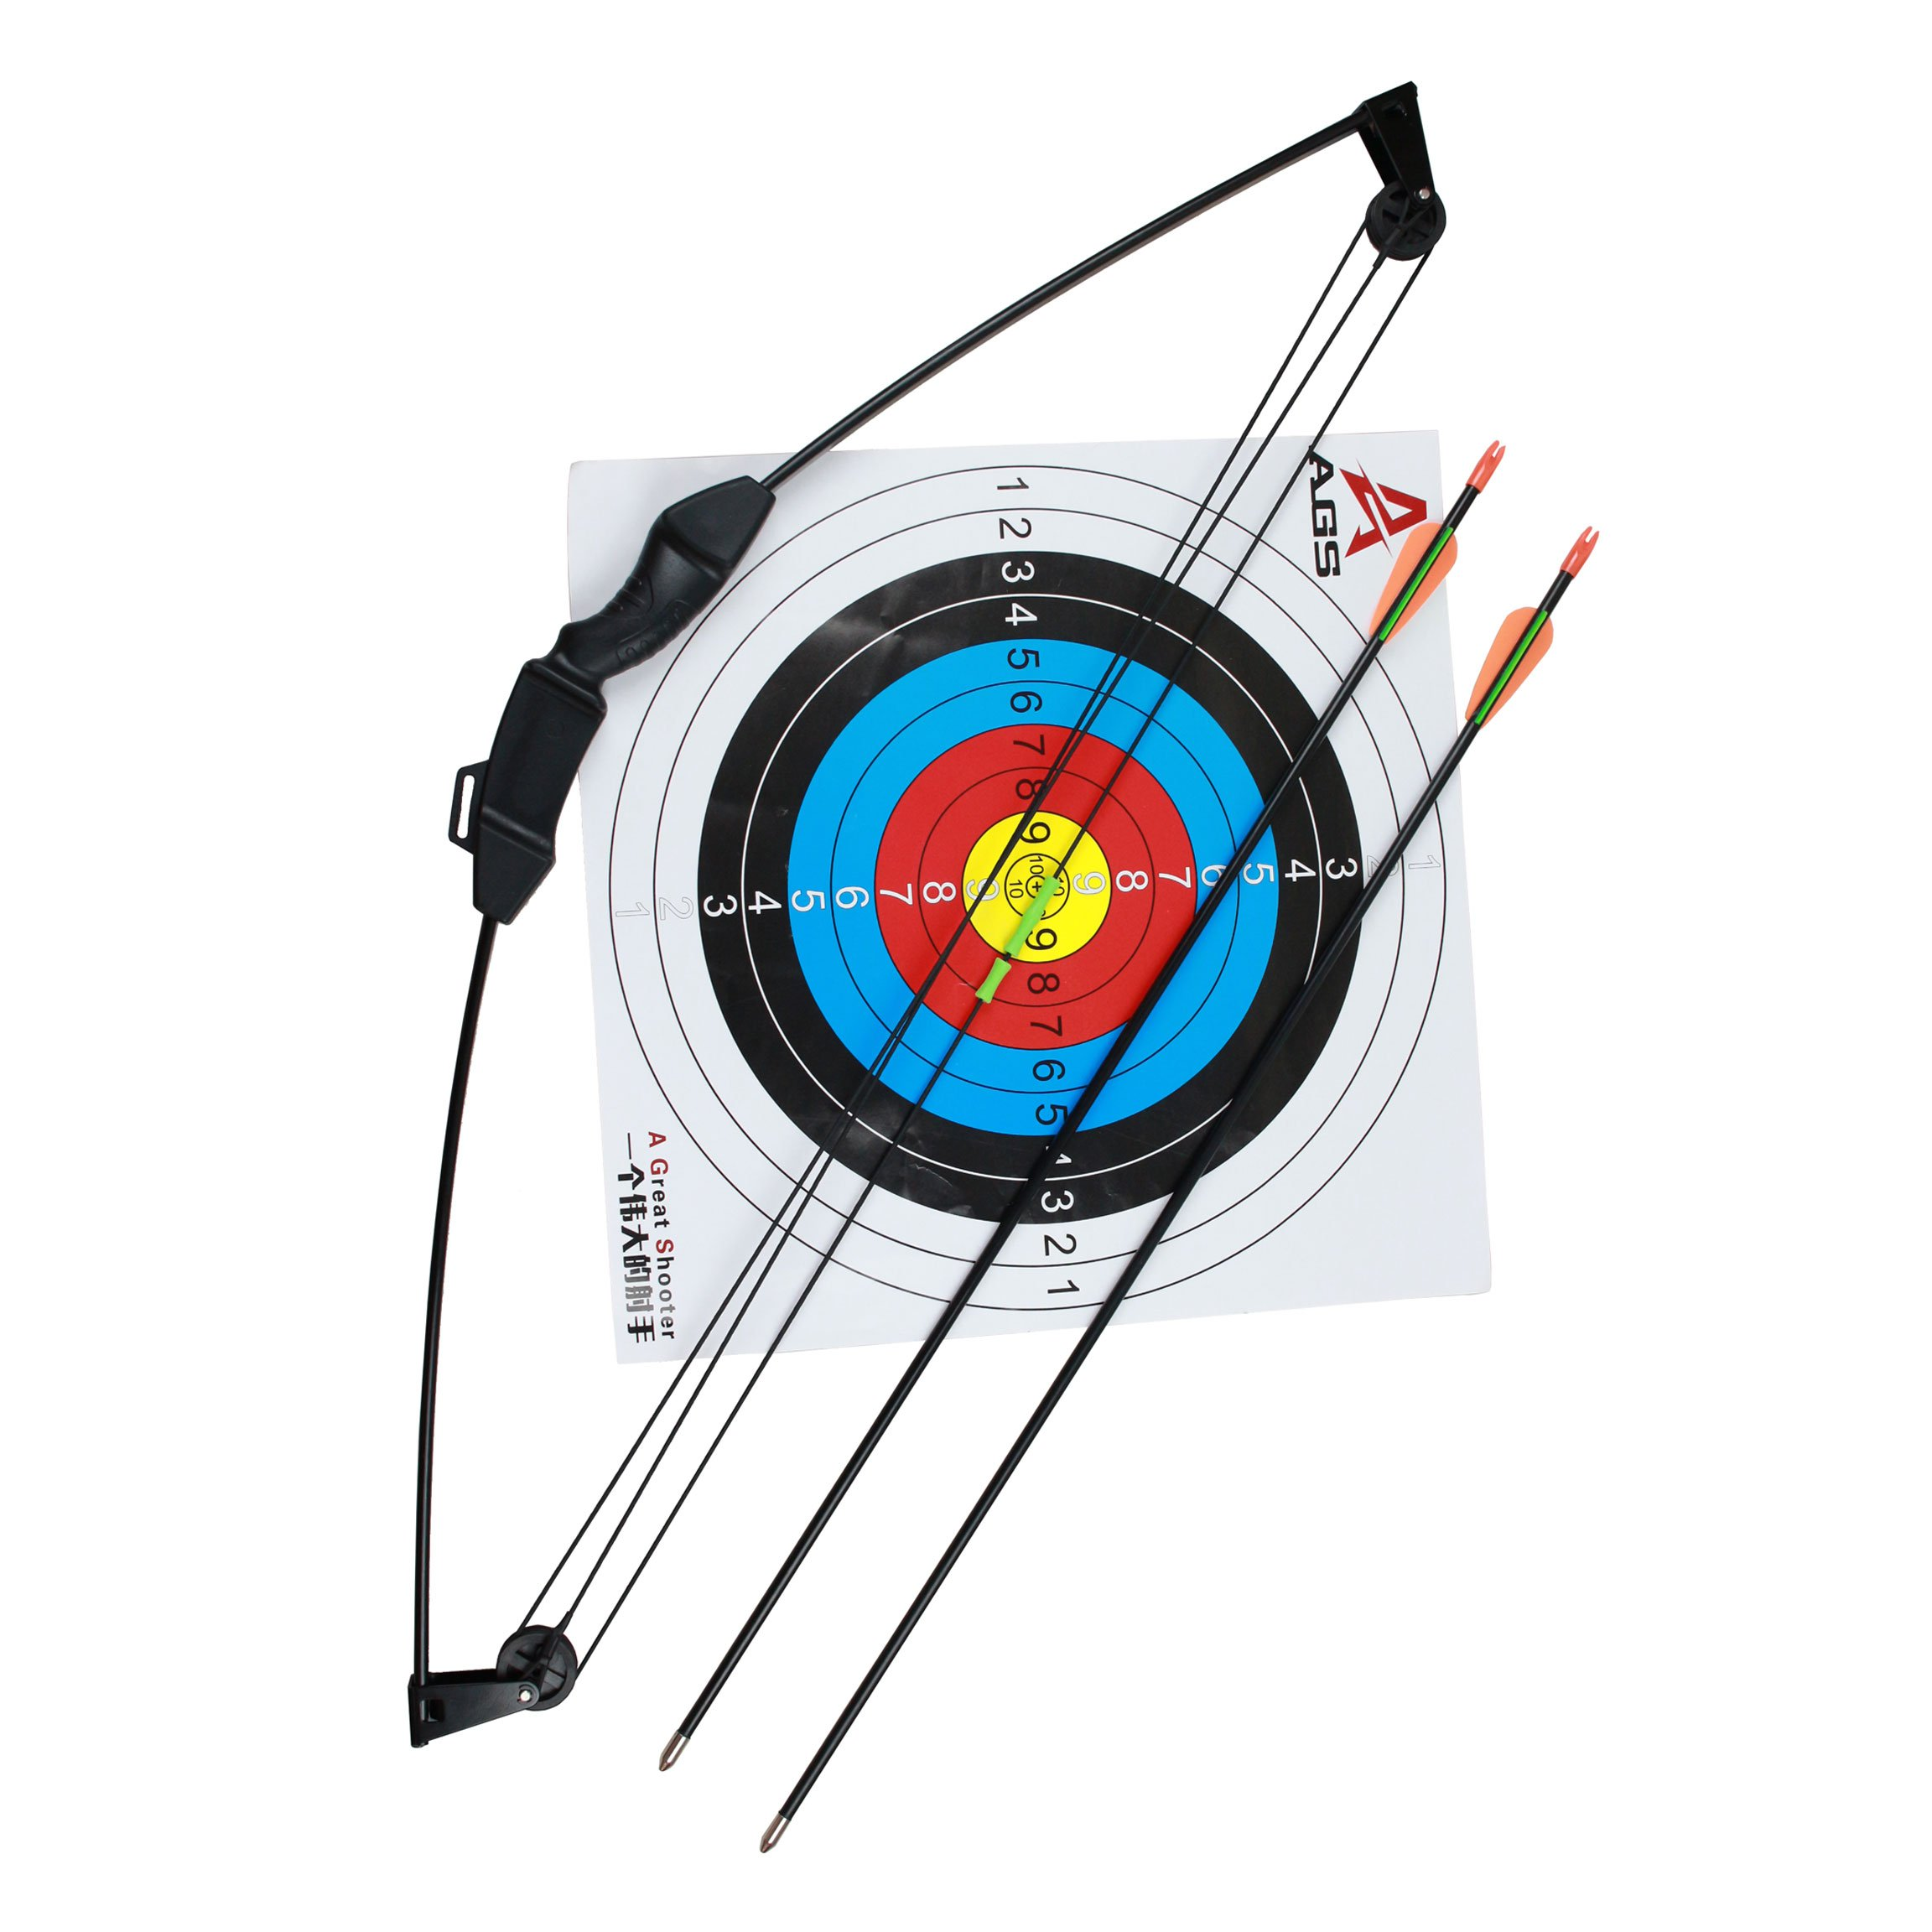 Geelife 35'' Junior Compound Bow and Arrow Archery Set with 2 Arrows and Target Sheet for Youth Kids Children